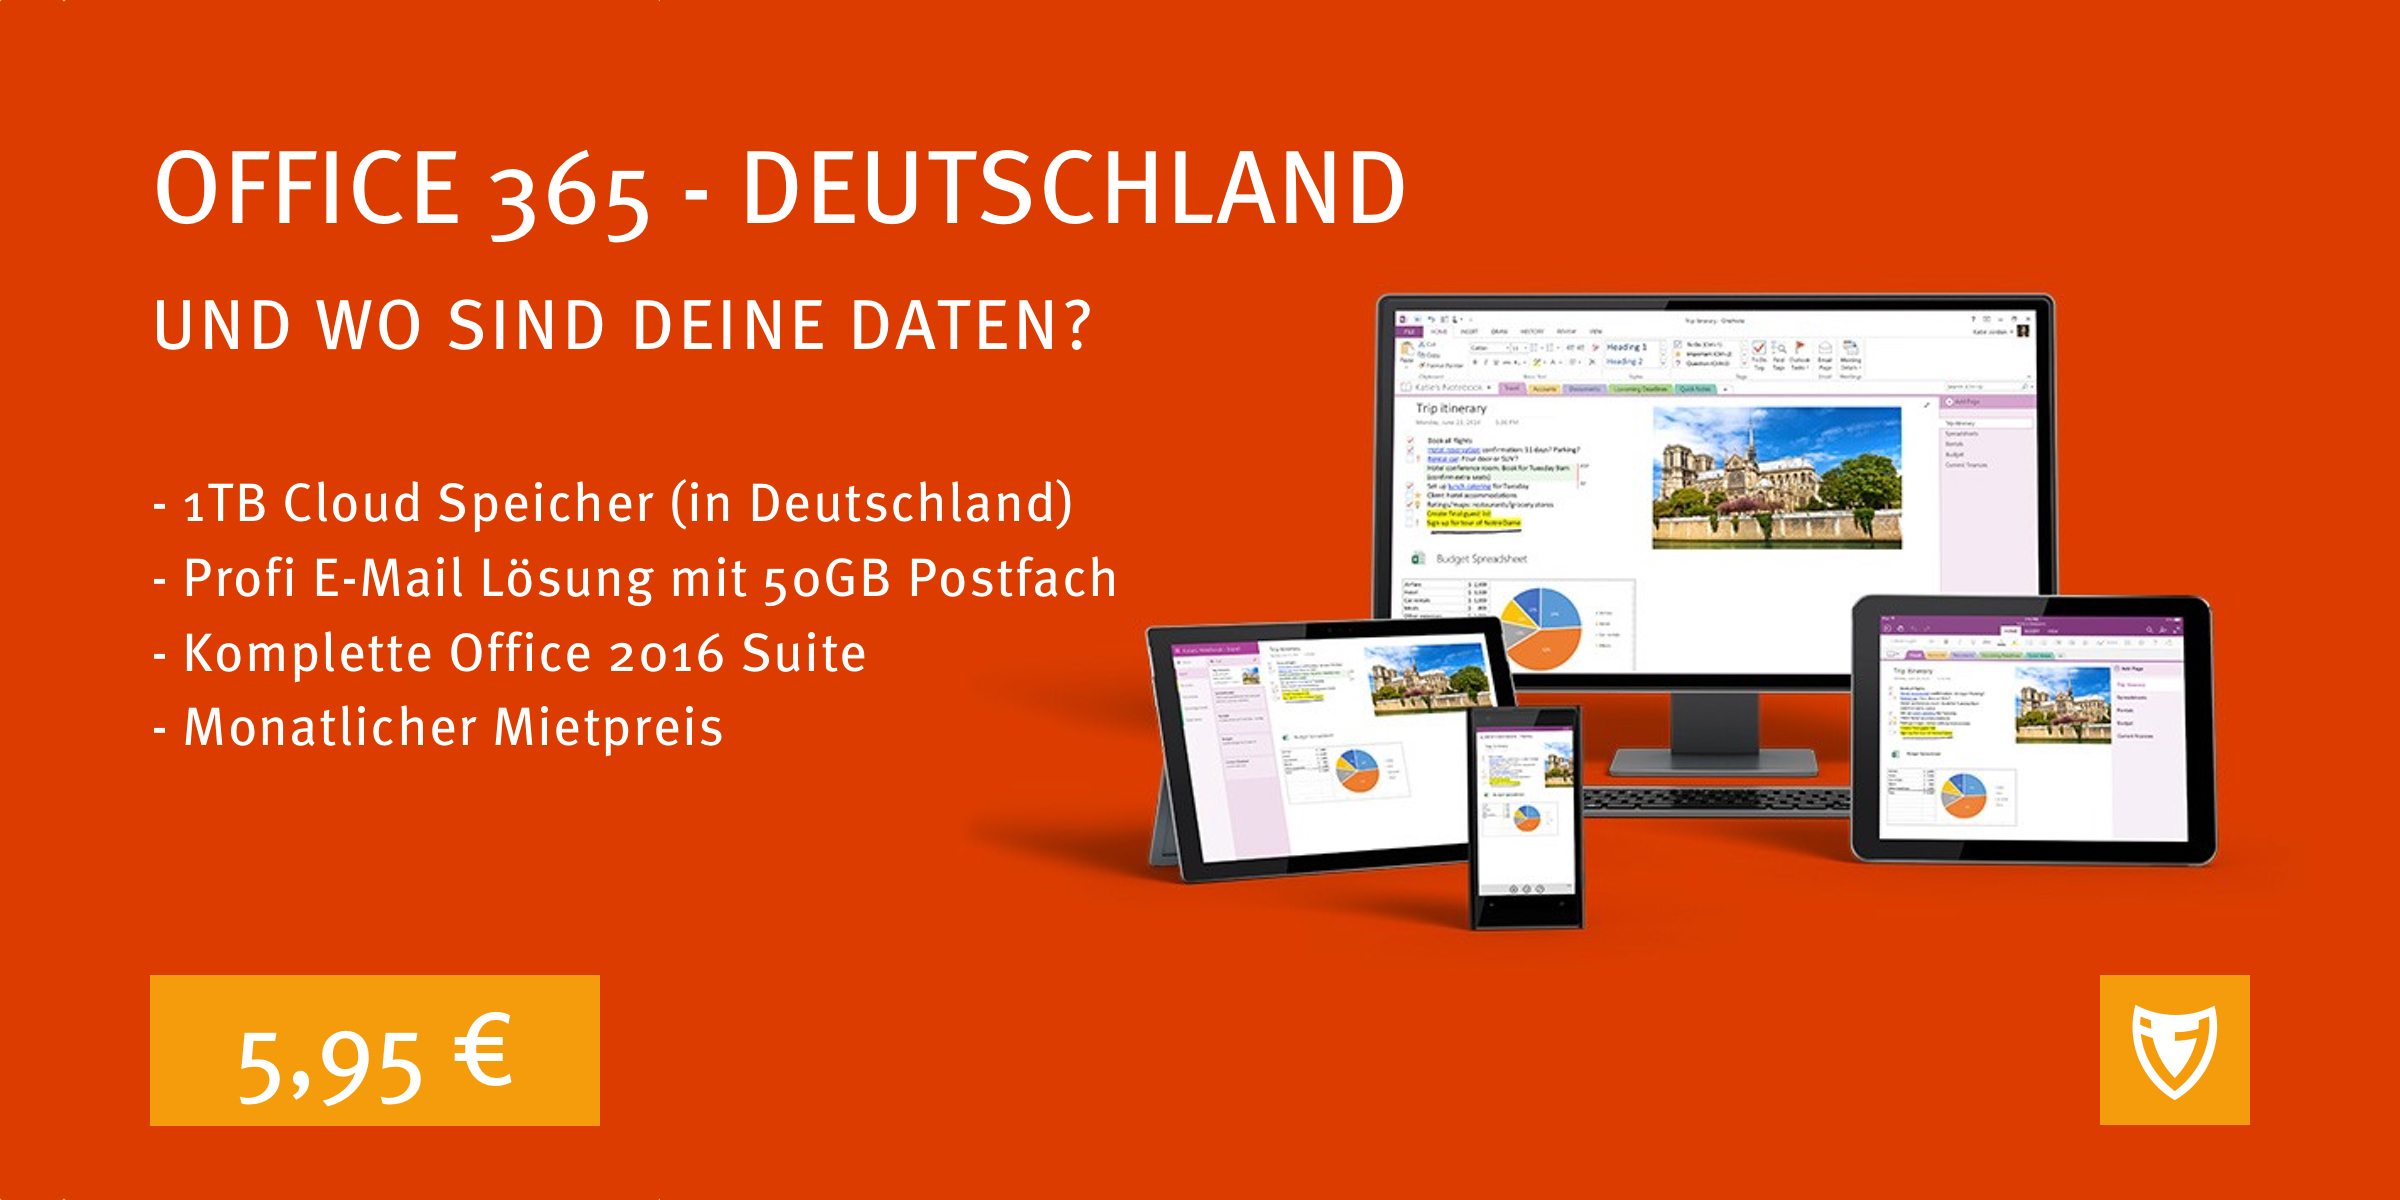 Office 365 Deutschland 🇩🇪